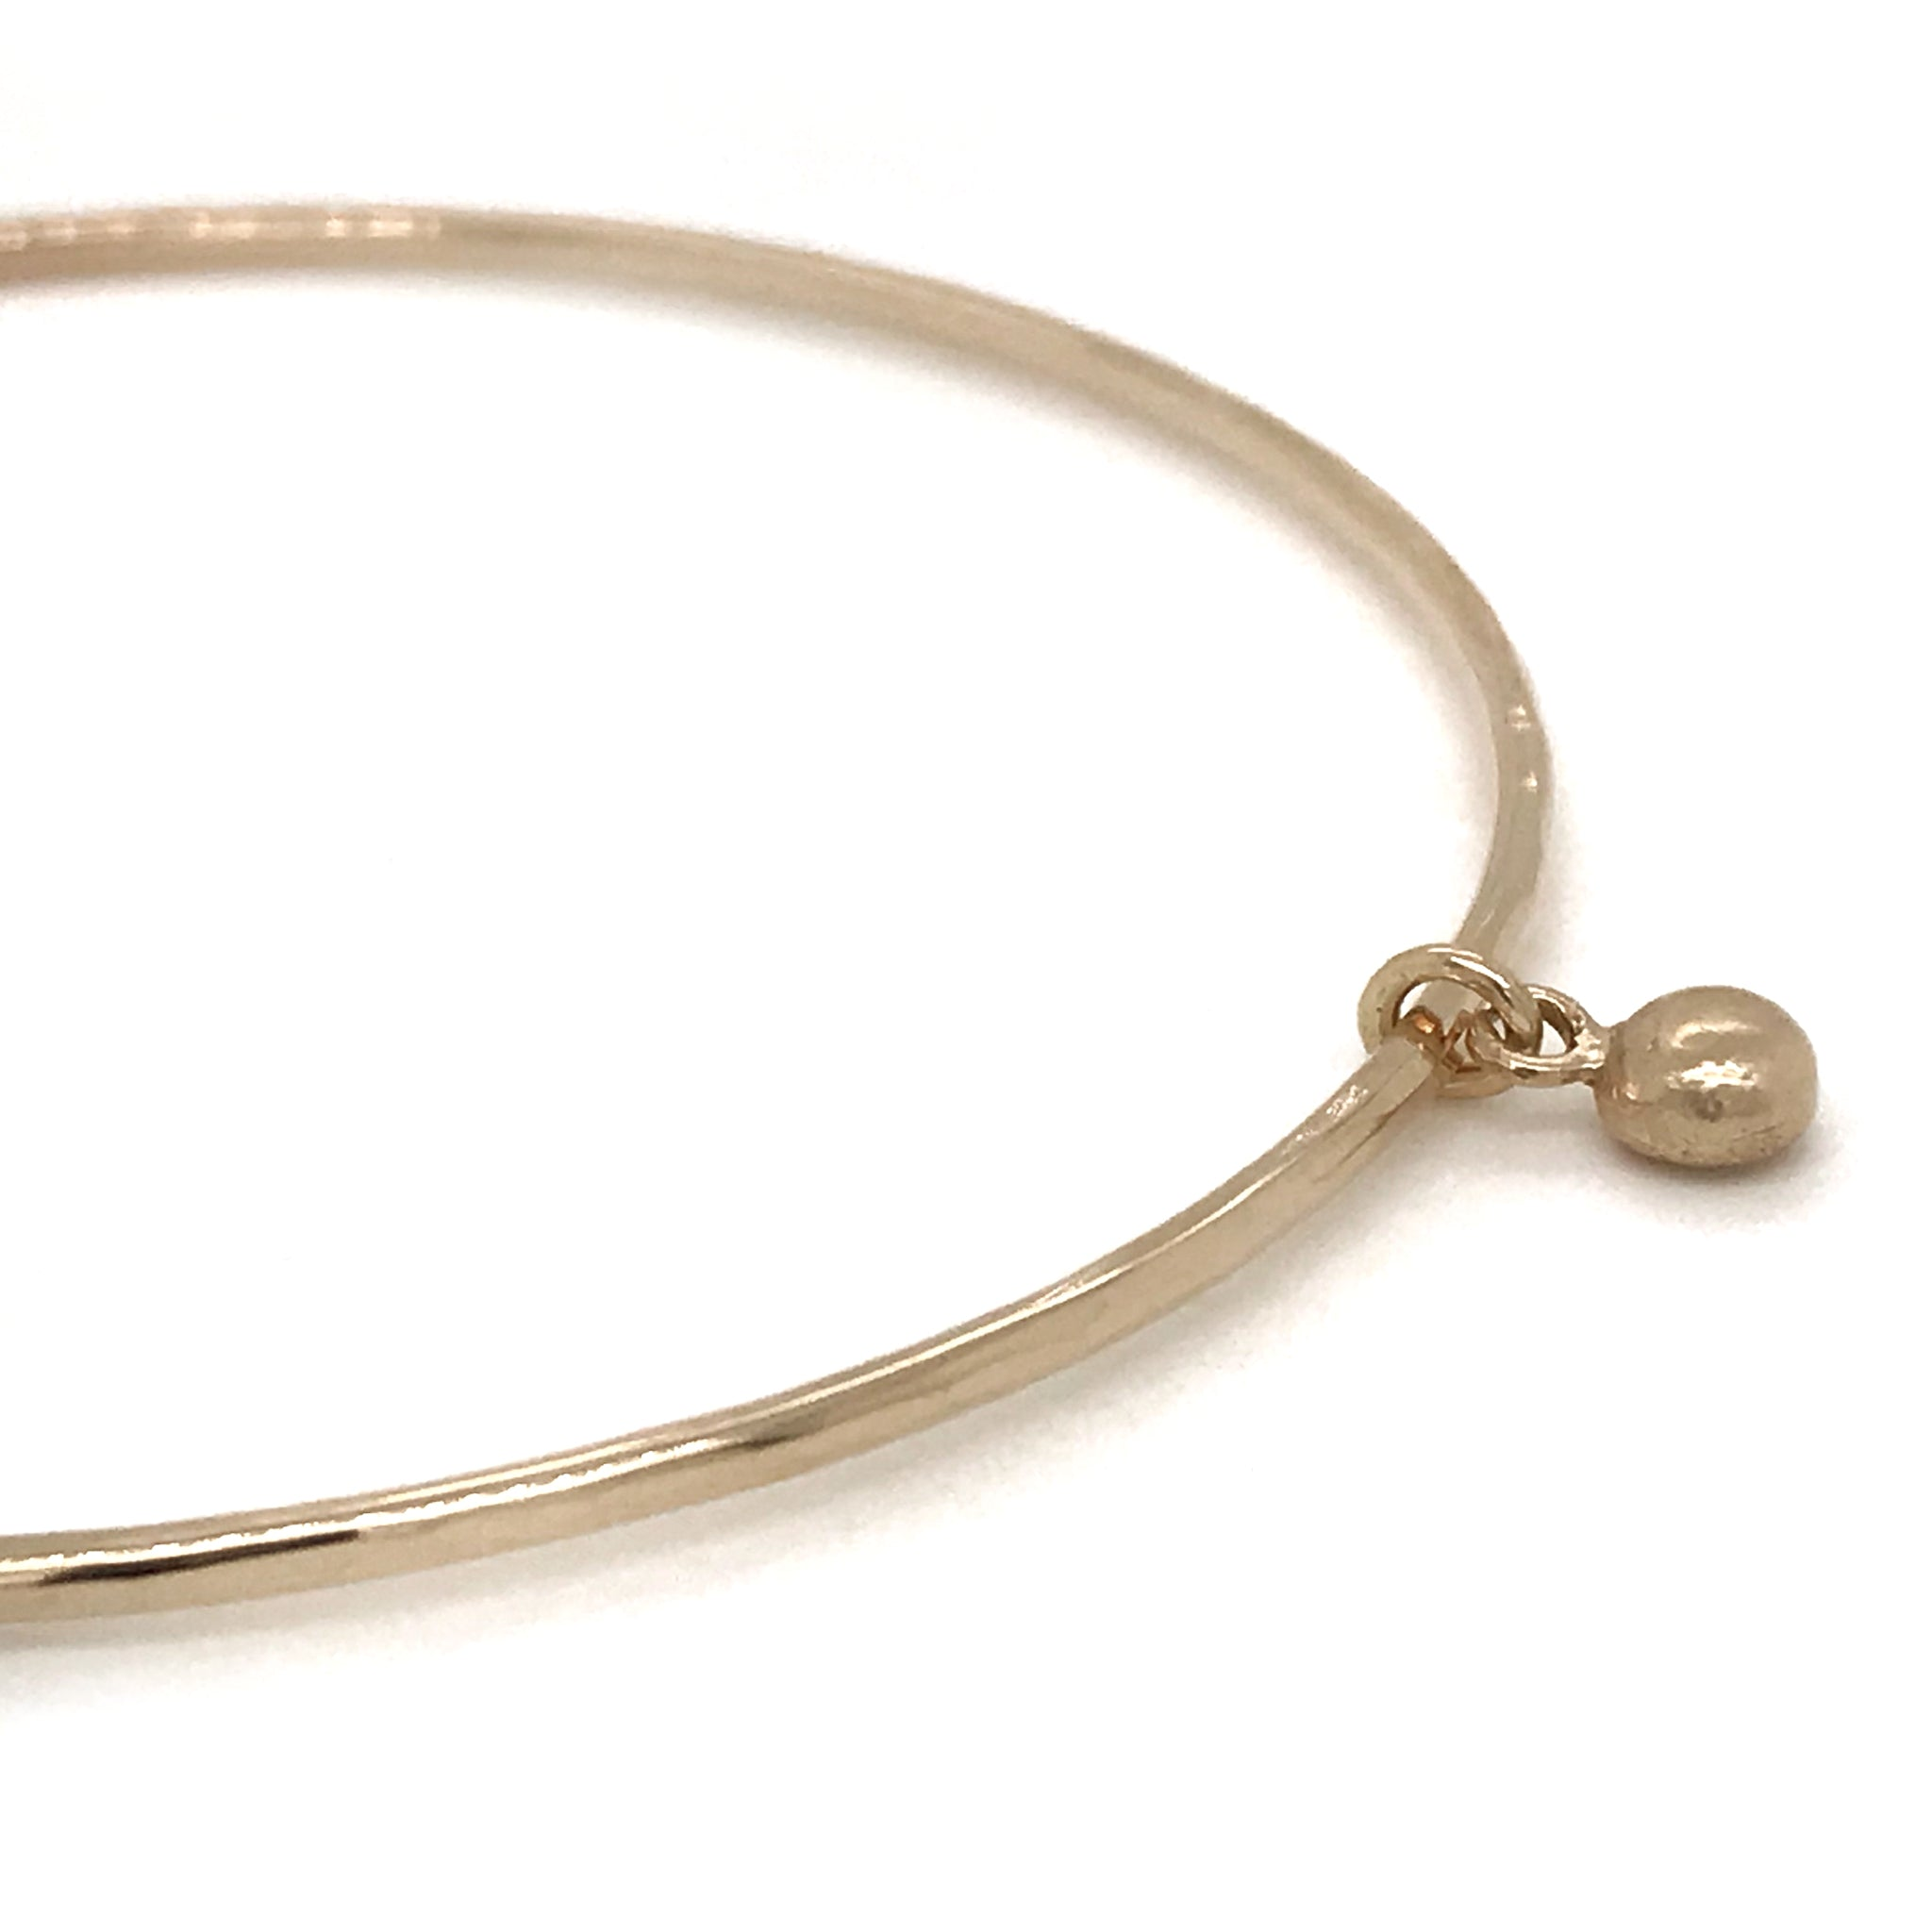 gold pebble charm bangle kriket broadhurst jewellery Sydney store